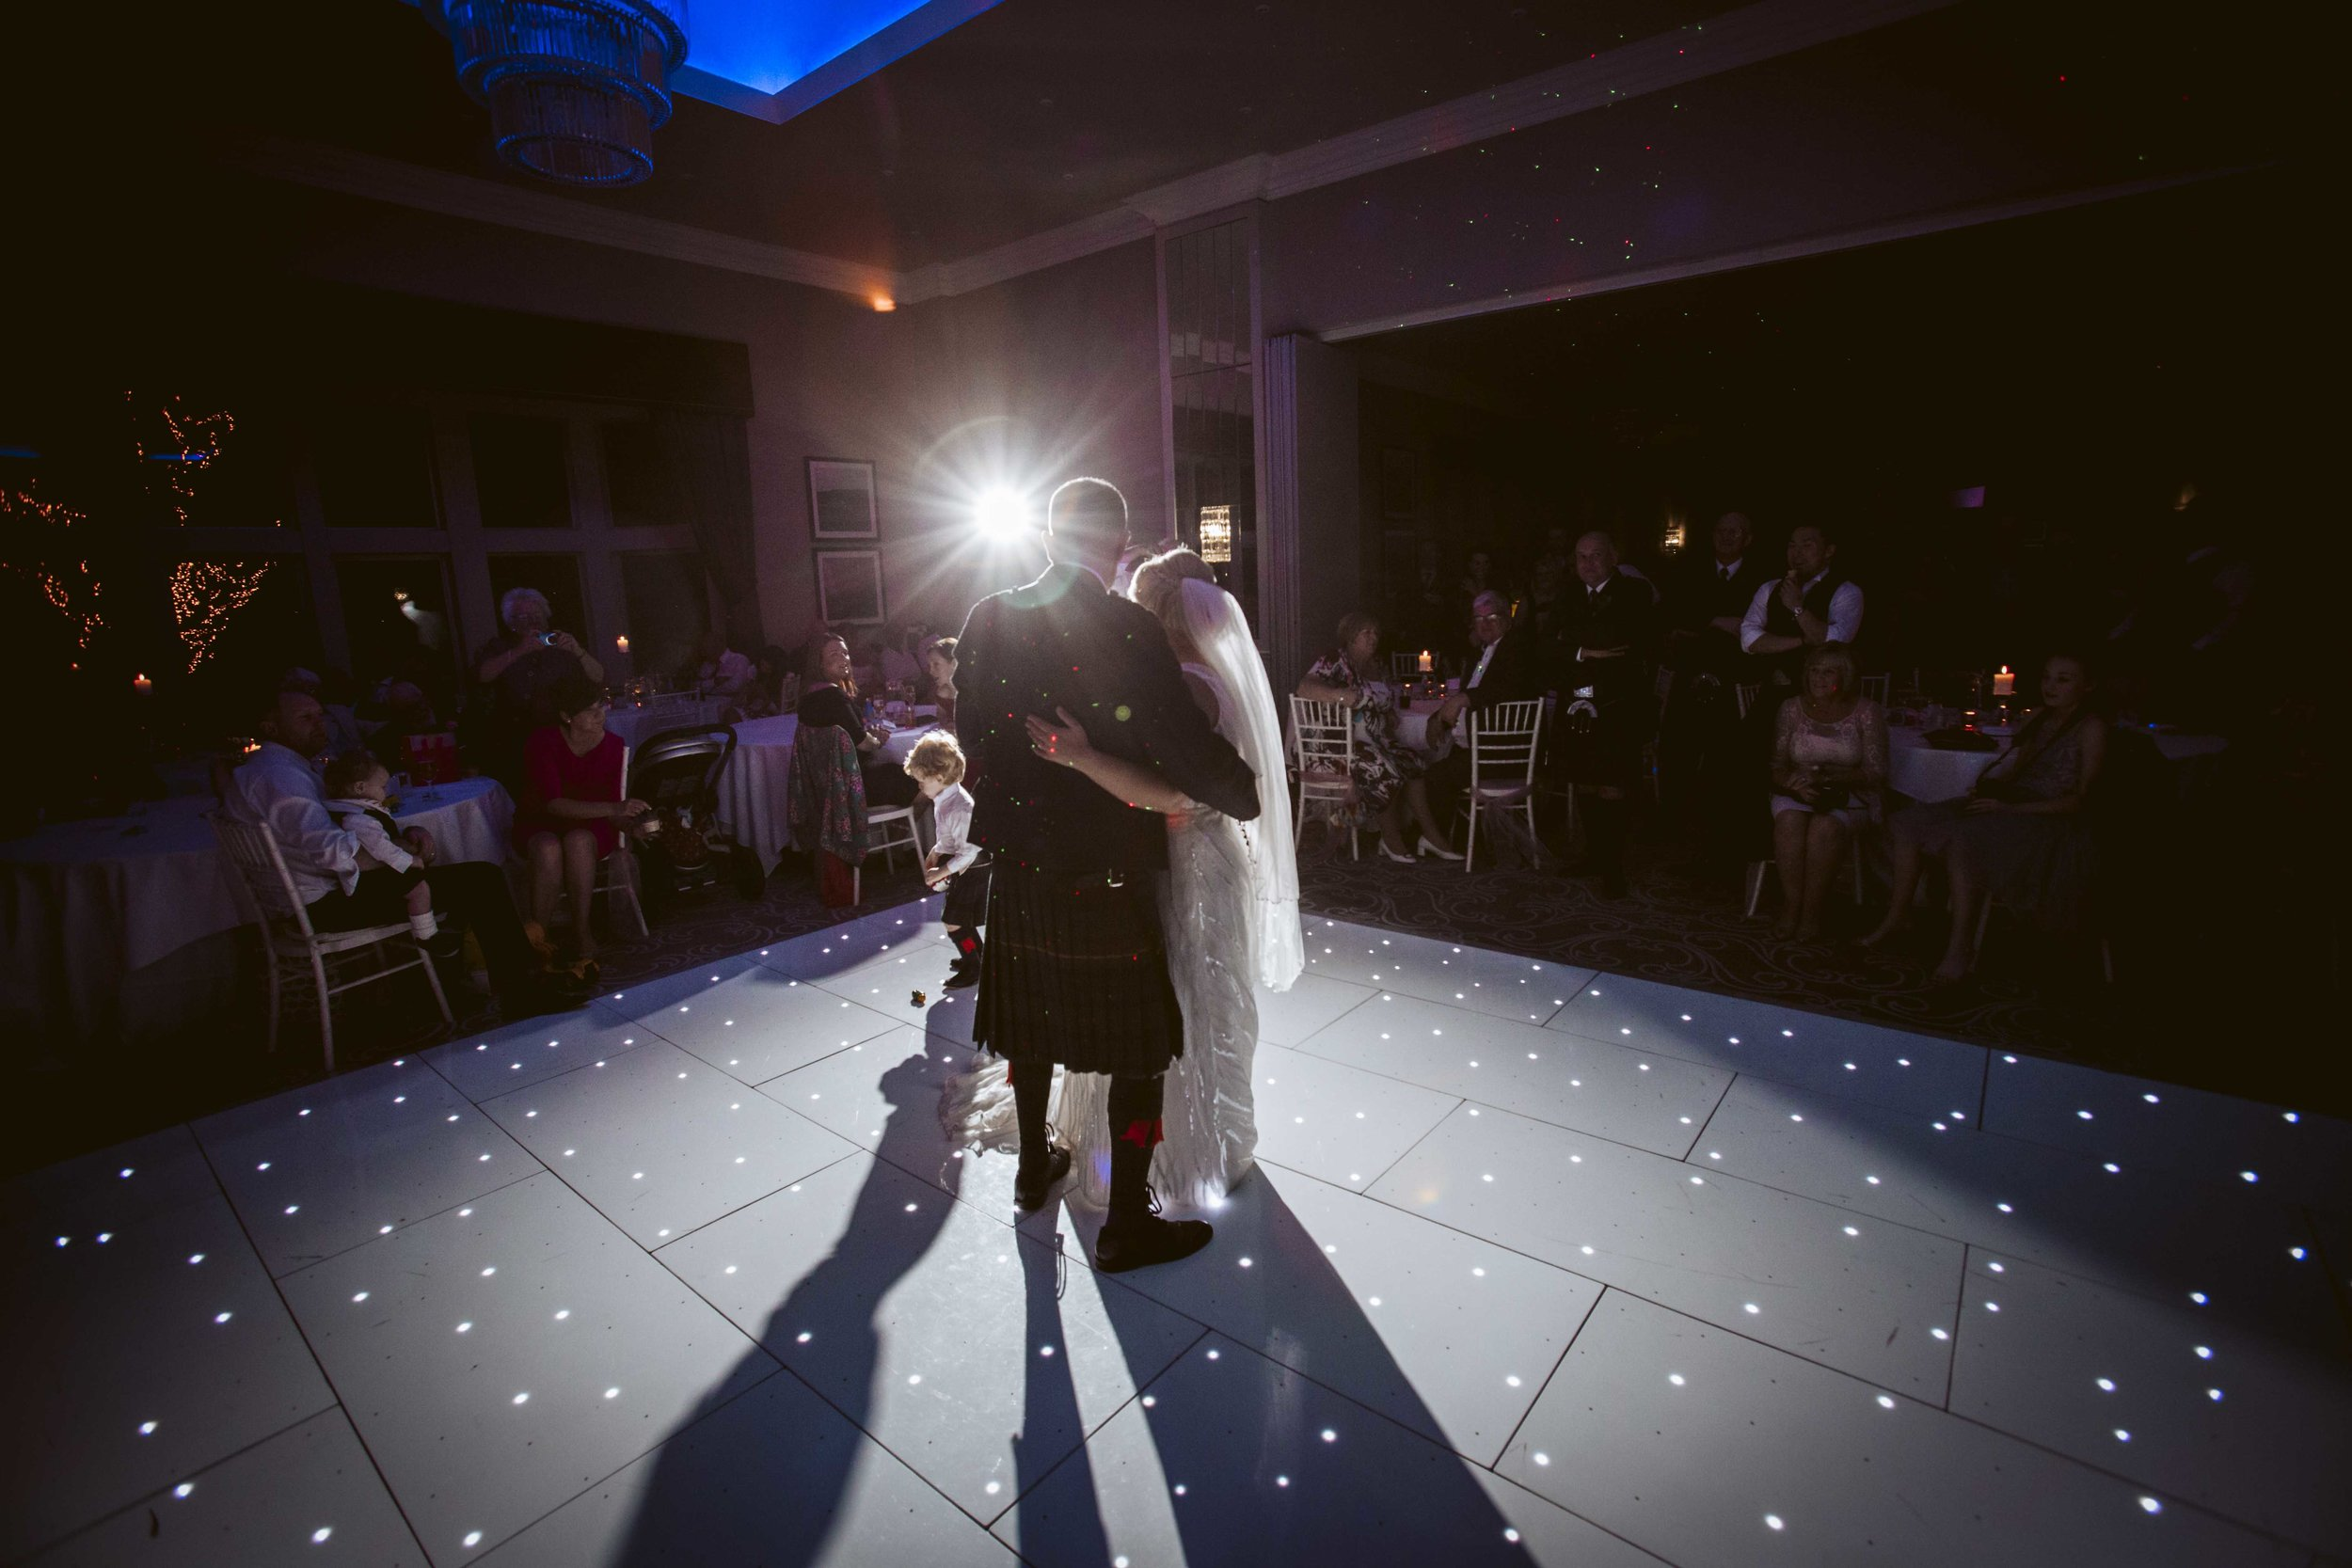 Mar Hall Wedding 2018, Haminsh & Emma McEwan 81.JPG